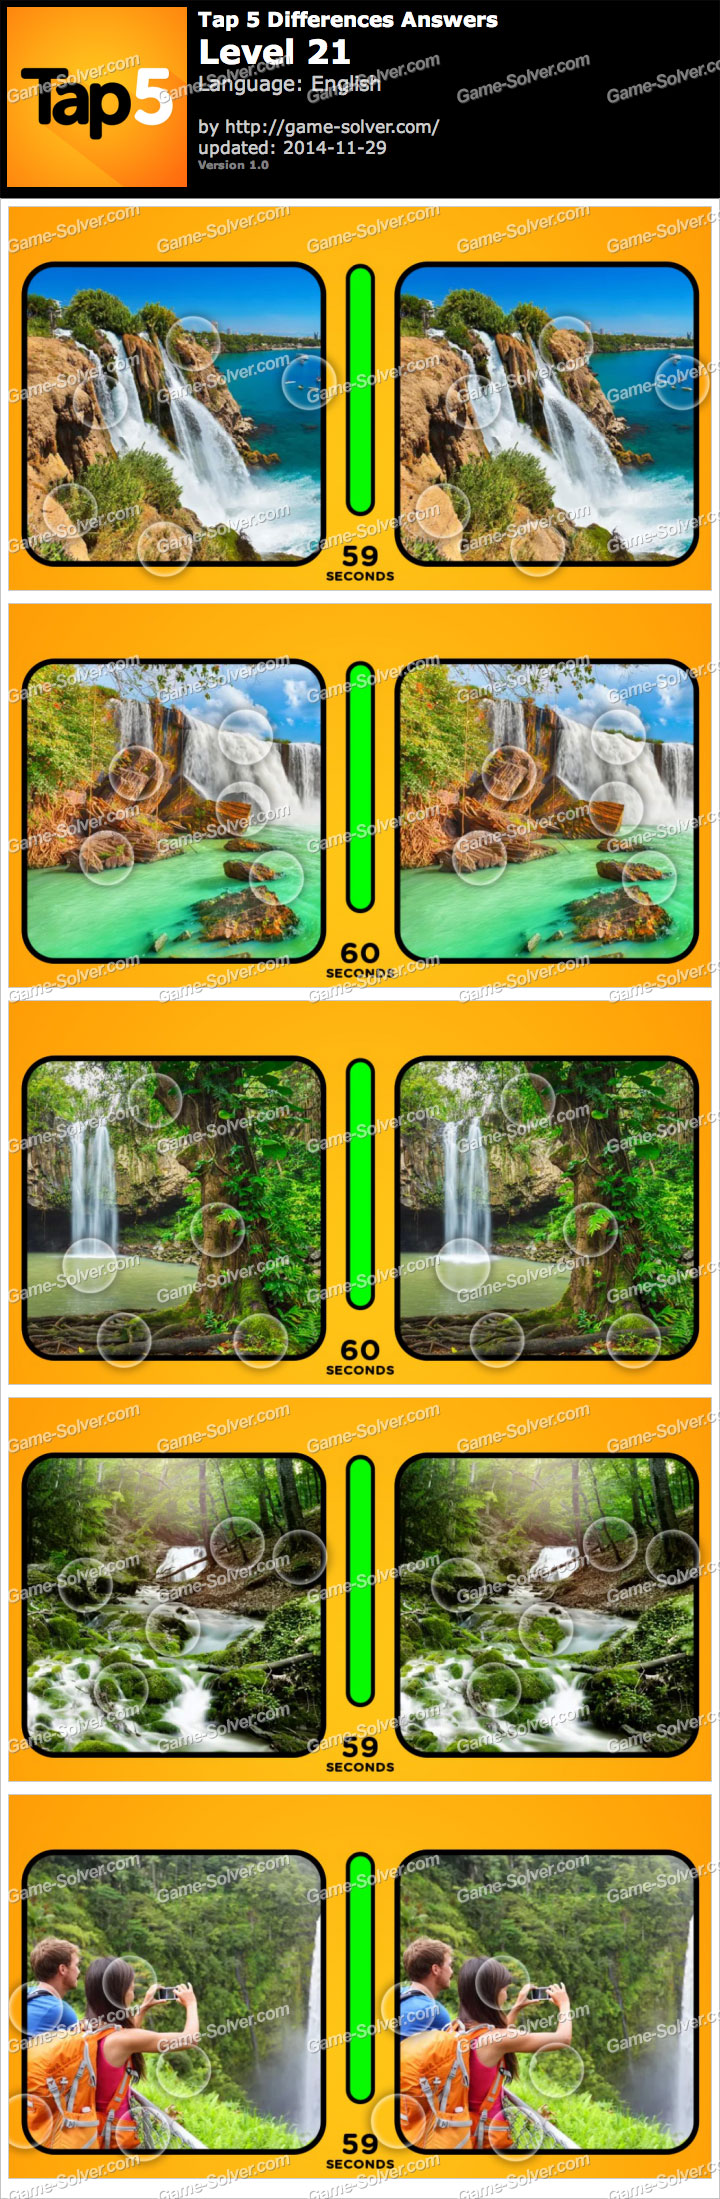 Tap 5 Differences Level 21